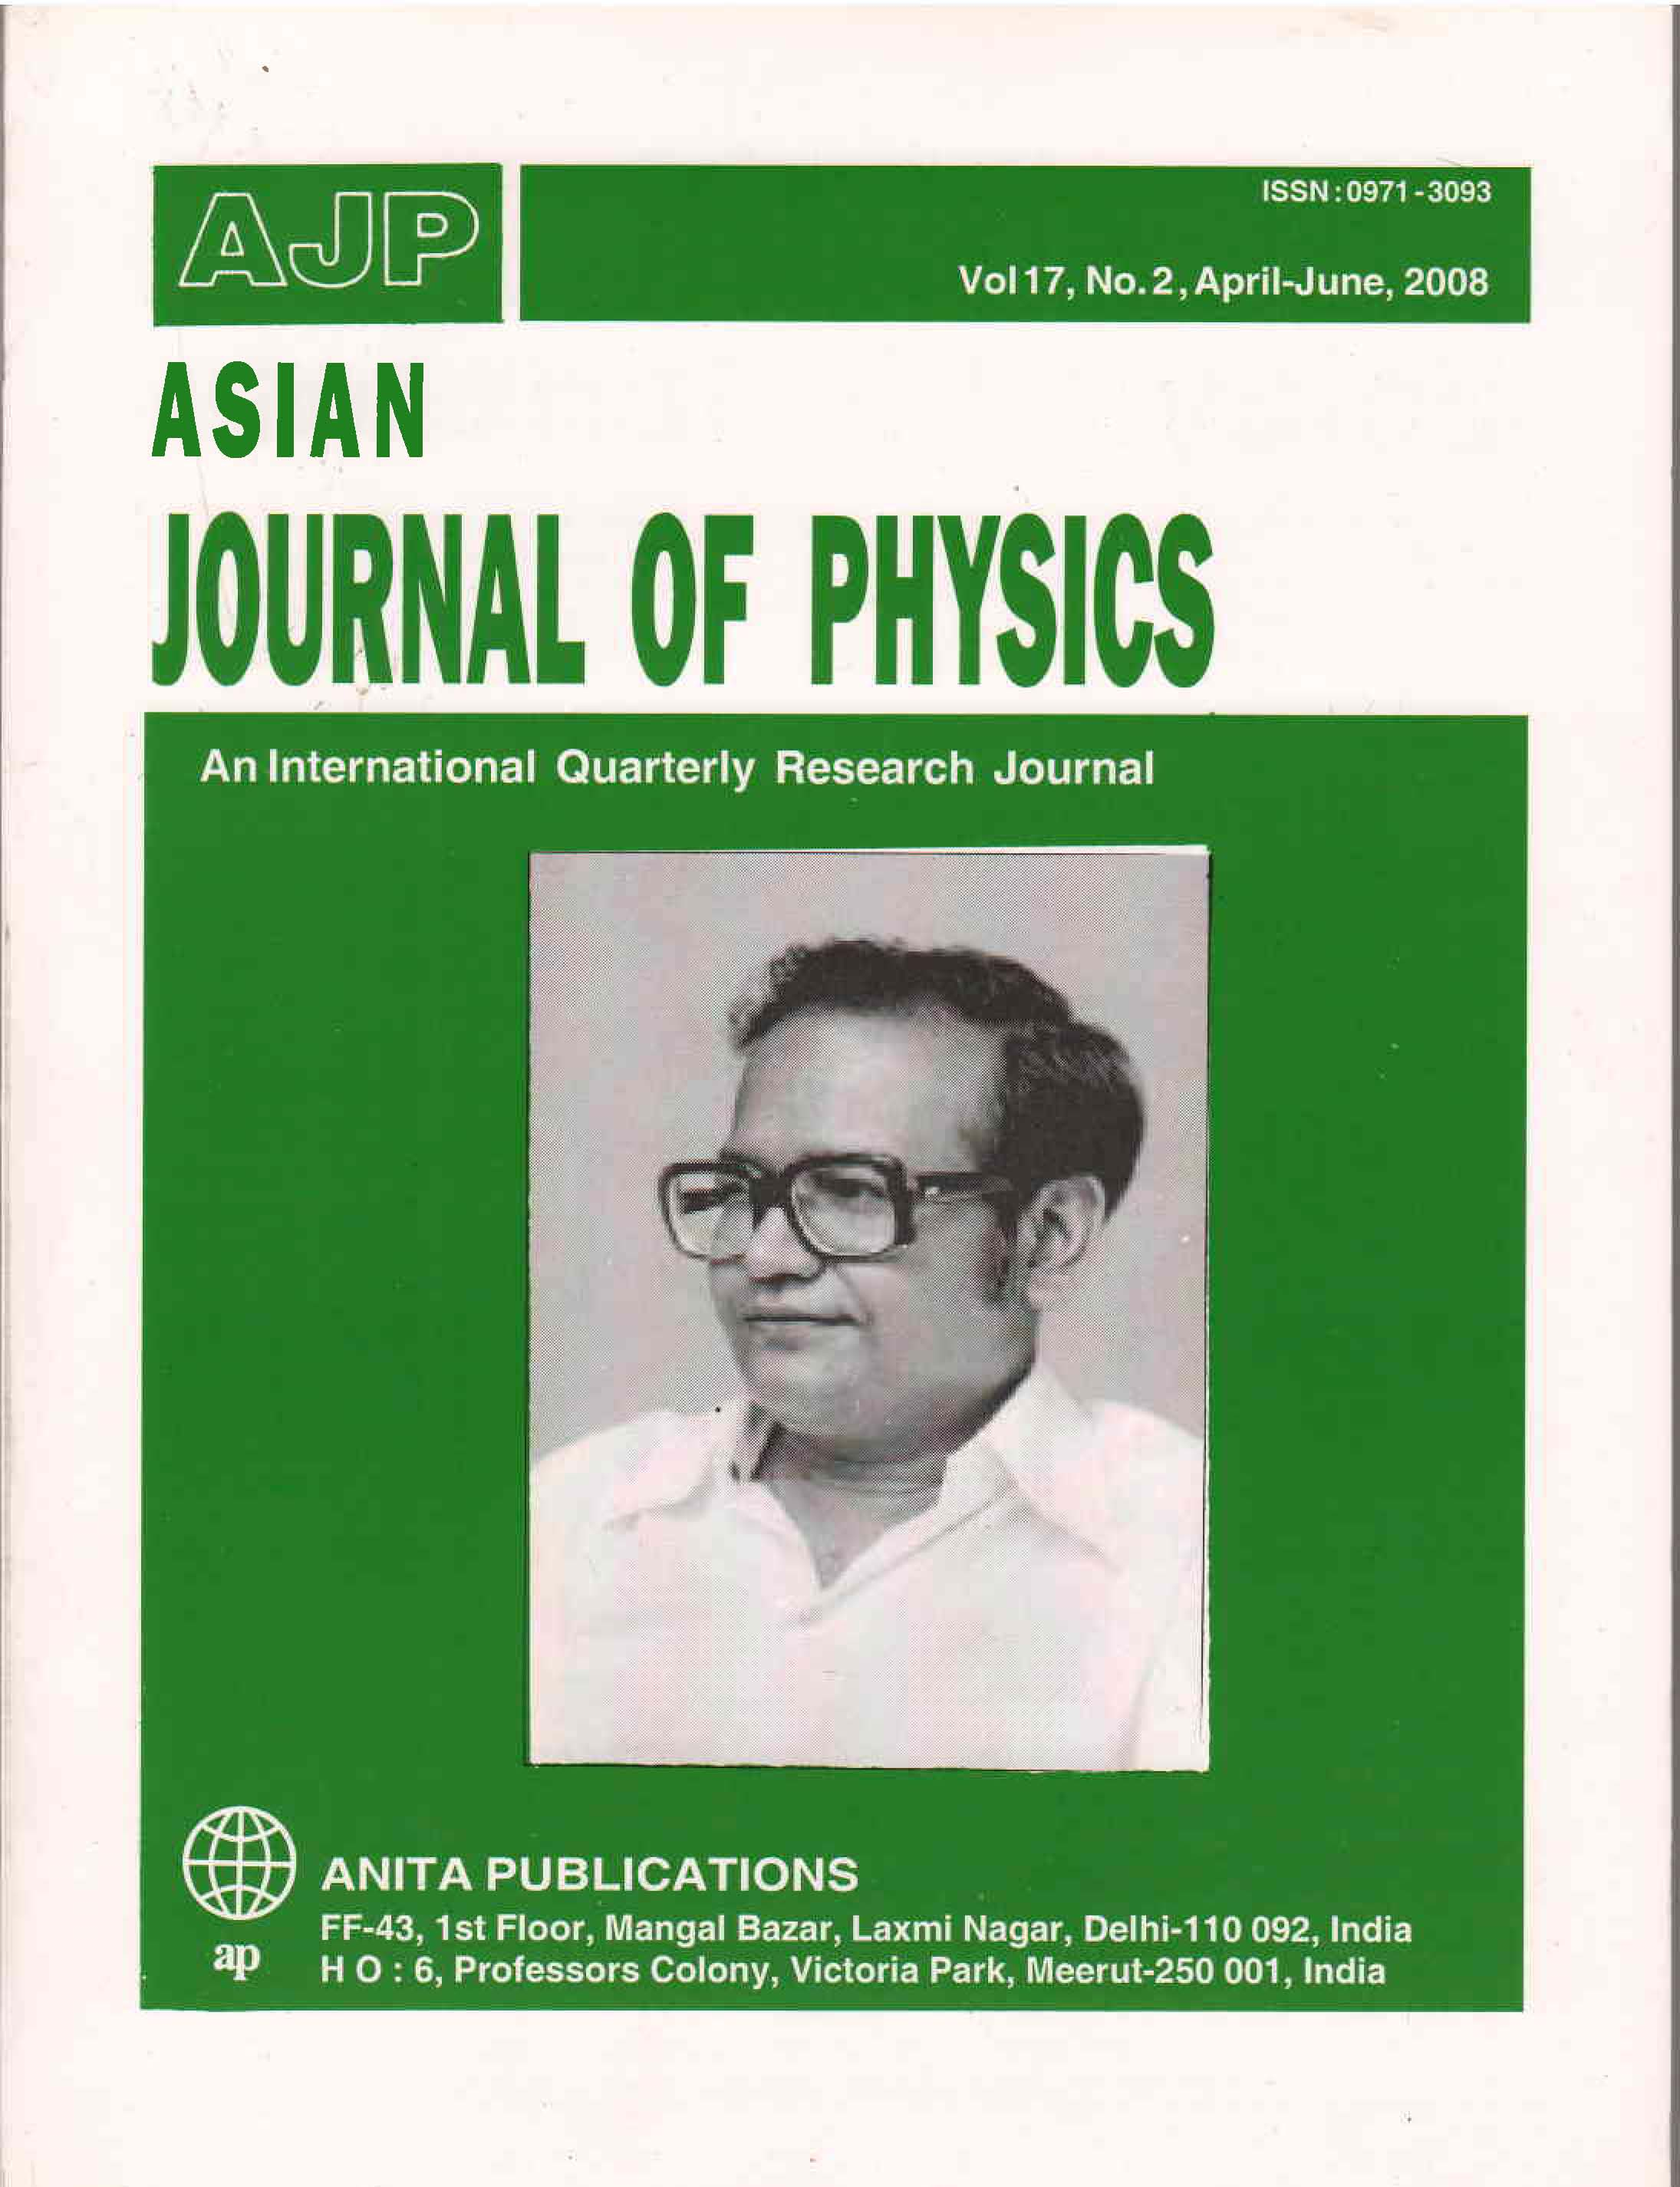 AJP Vol 17 No 2, 2008